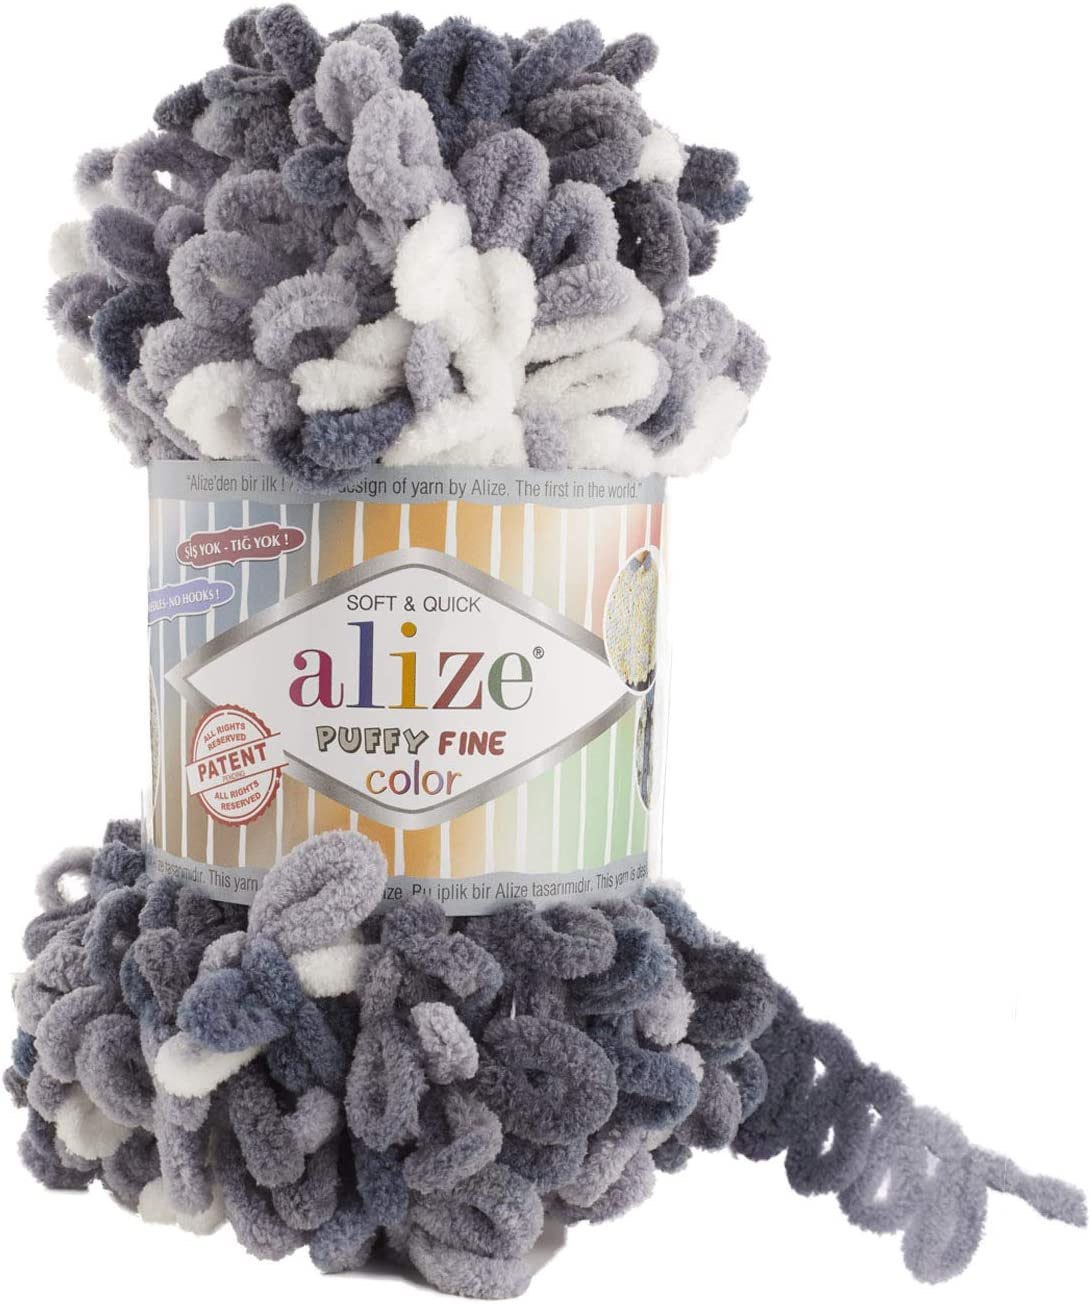 Alize Puffy Fine Color Yarn Baby skeins 5 Blanket 50 of Gorgeous Lot low-pricing